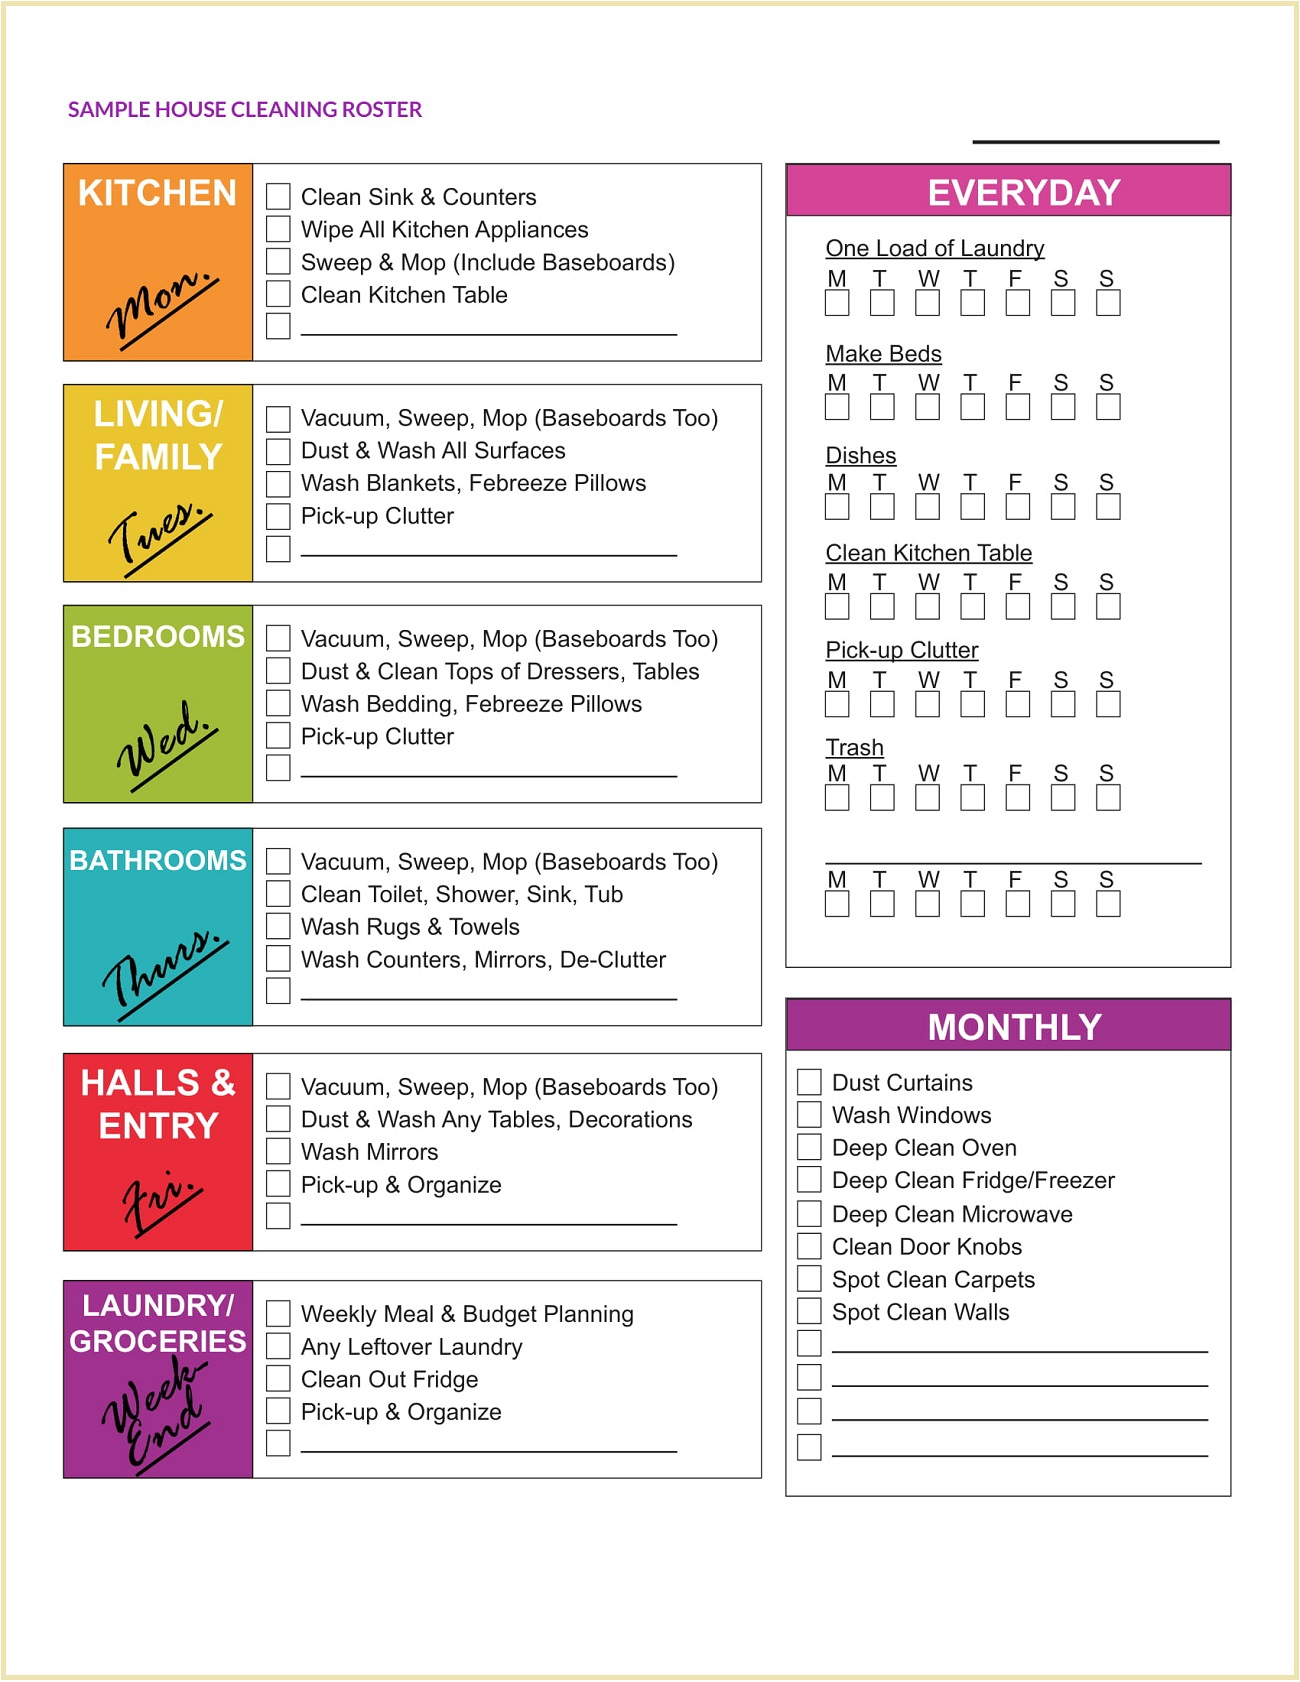 Sample House Cleaning Roster Template PDF